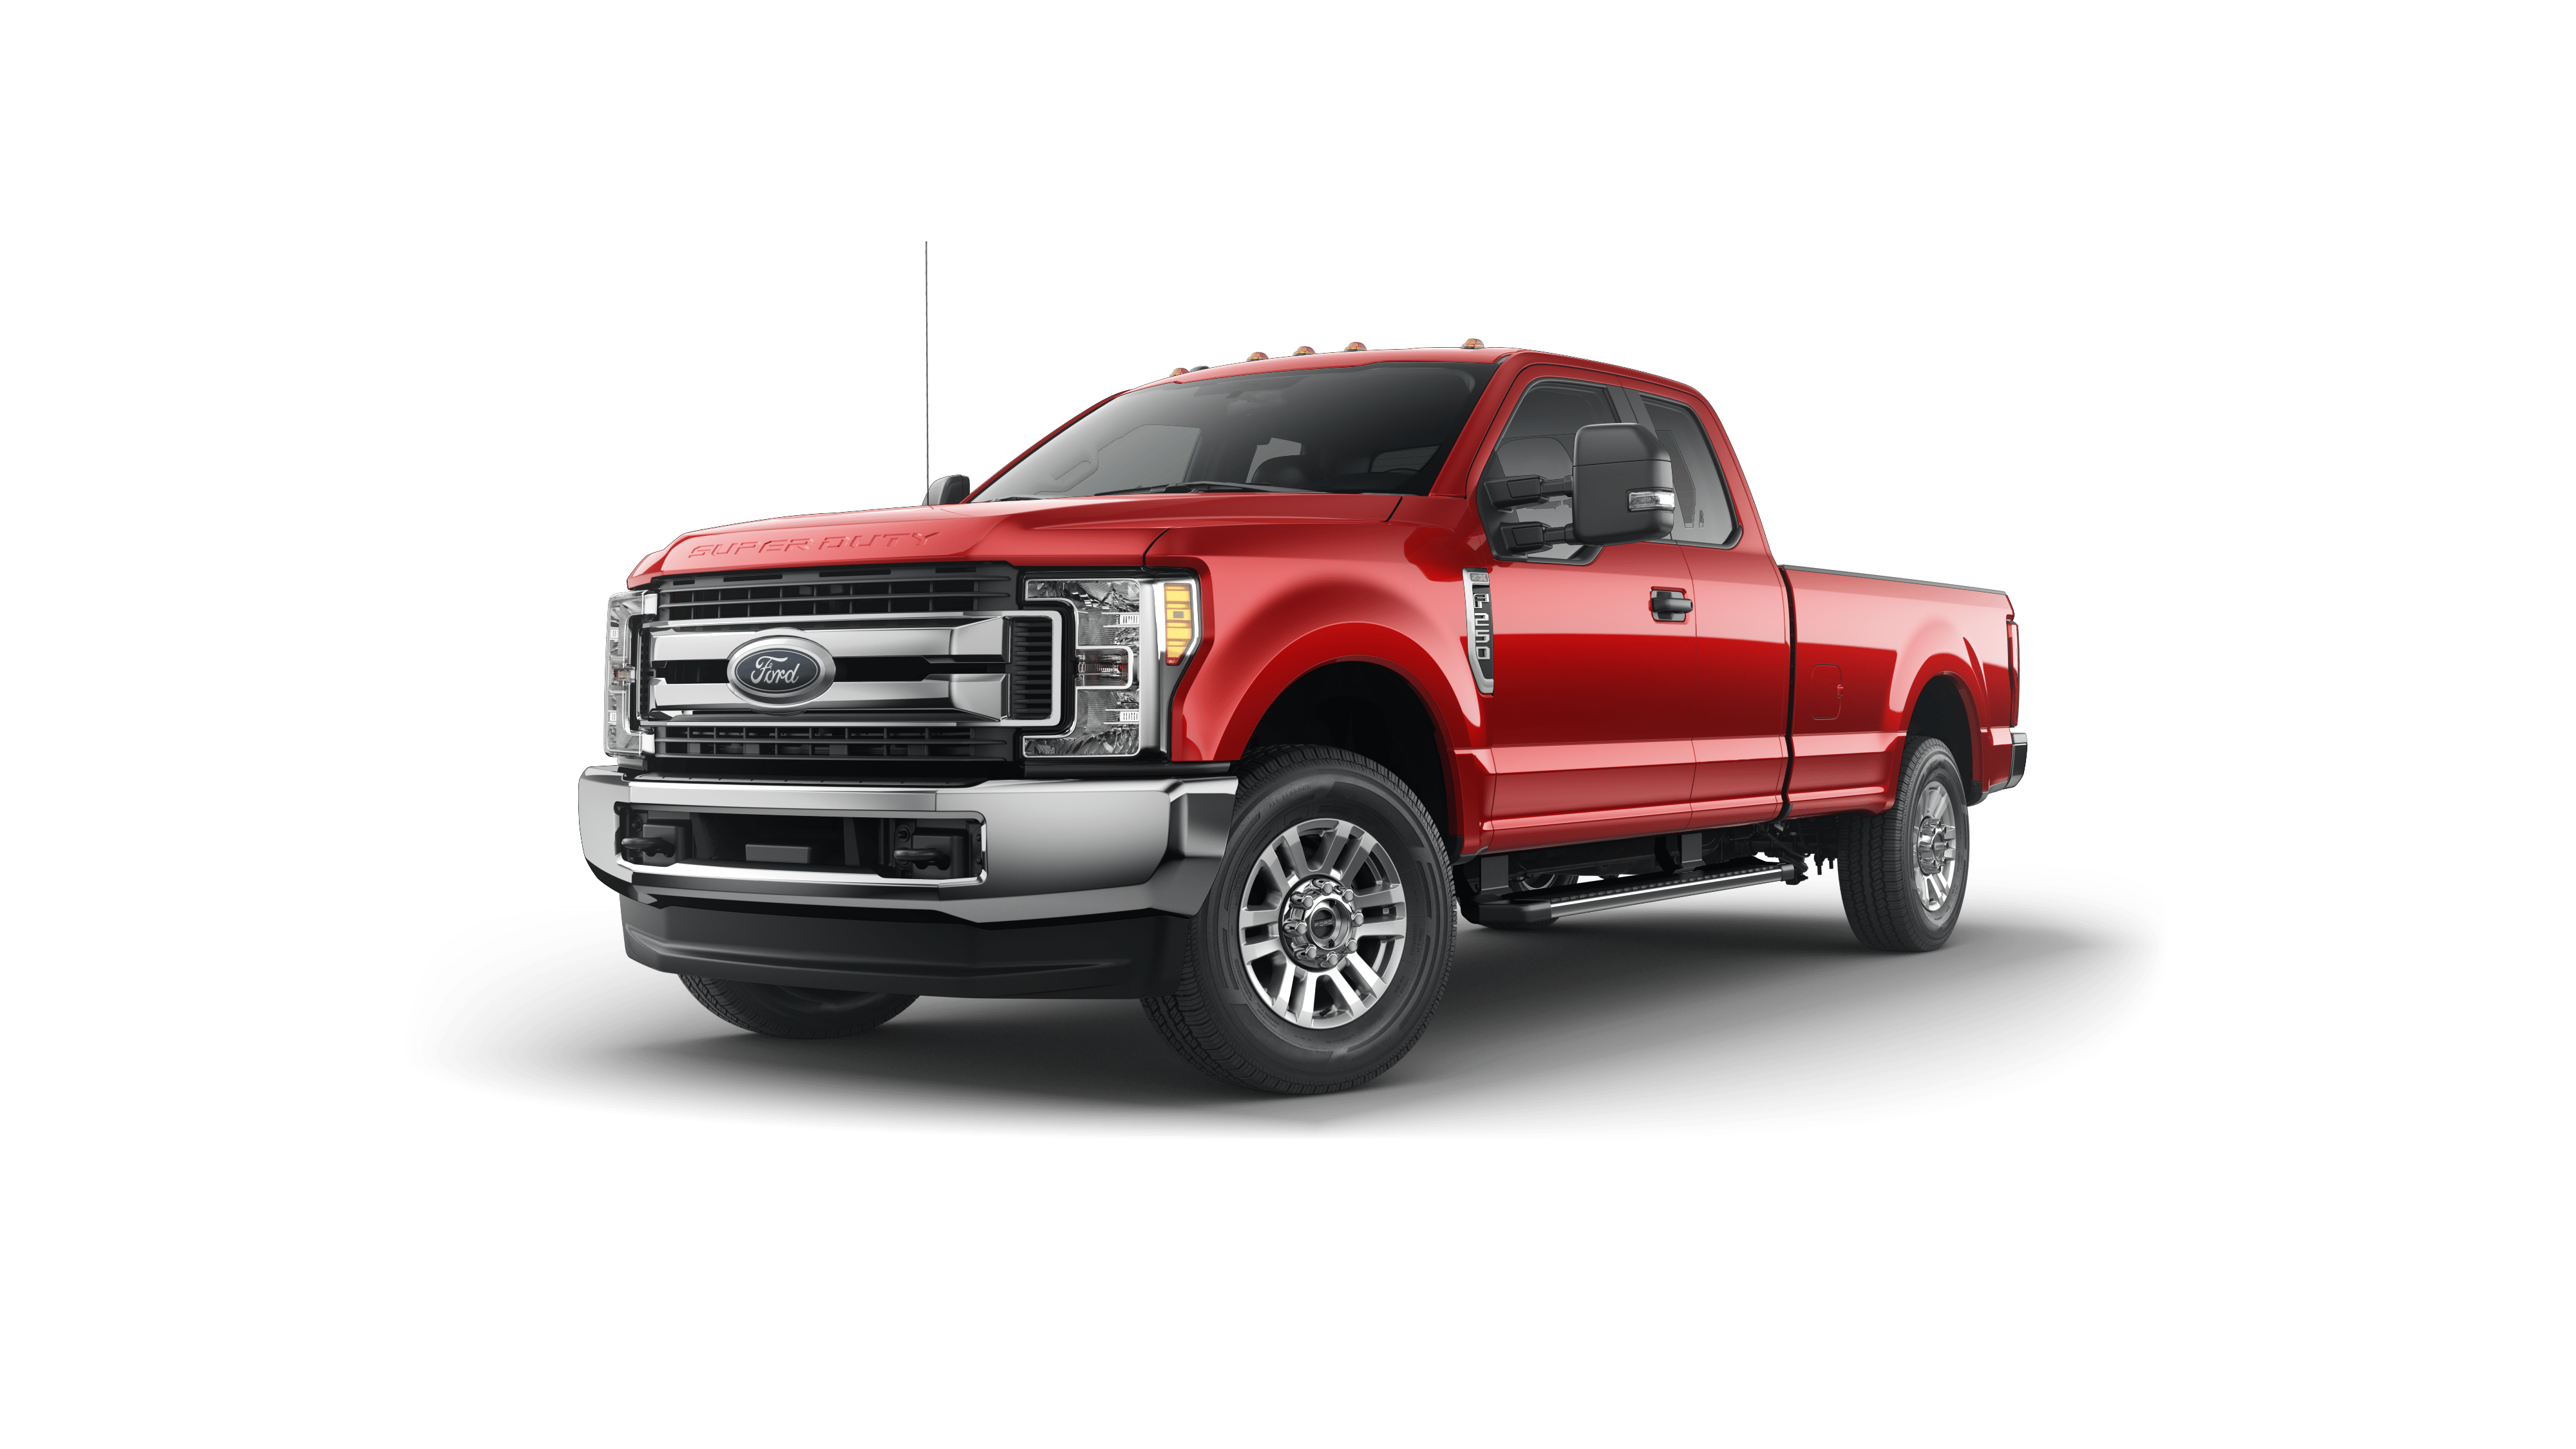 Ciocca Ford Souderton >> Race Red 2019 Ford Super Duty F-250 SRW for Sale at Ciocca Ford - VIN: 1FD7X2B6XKEE08191